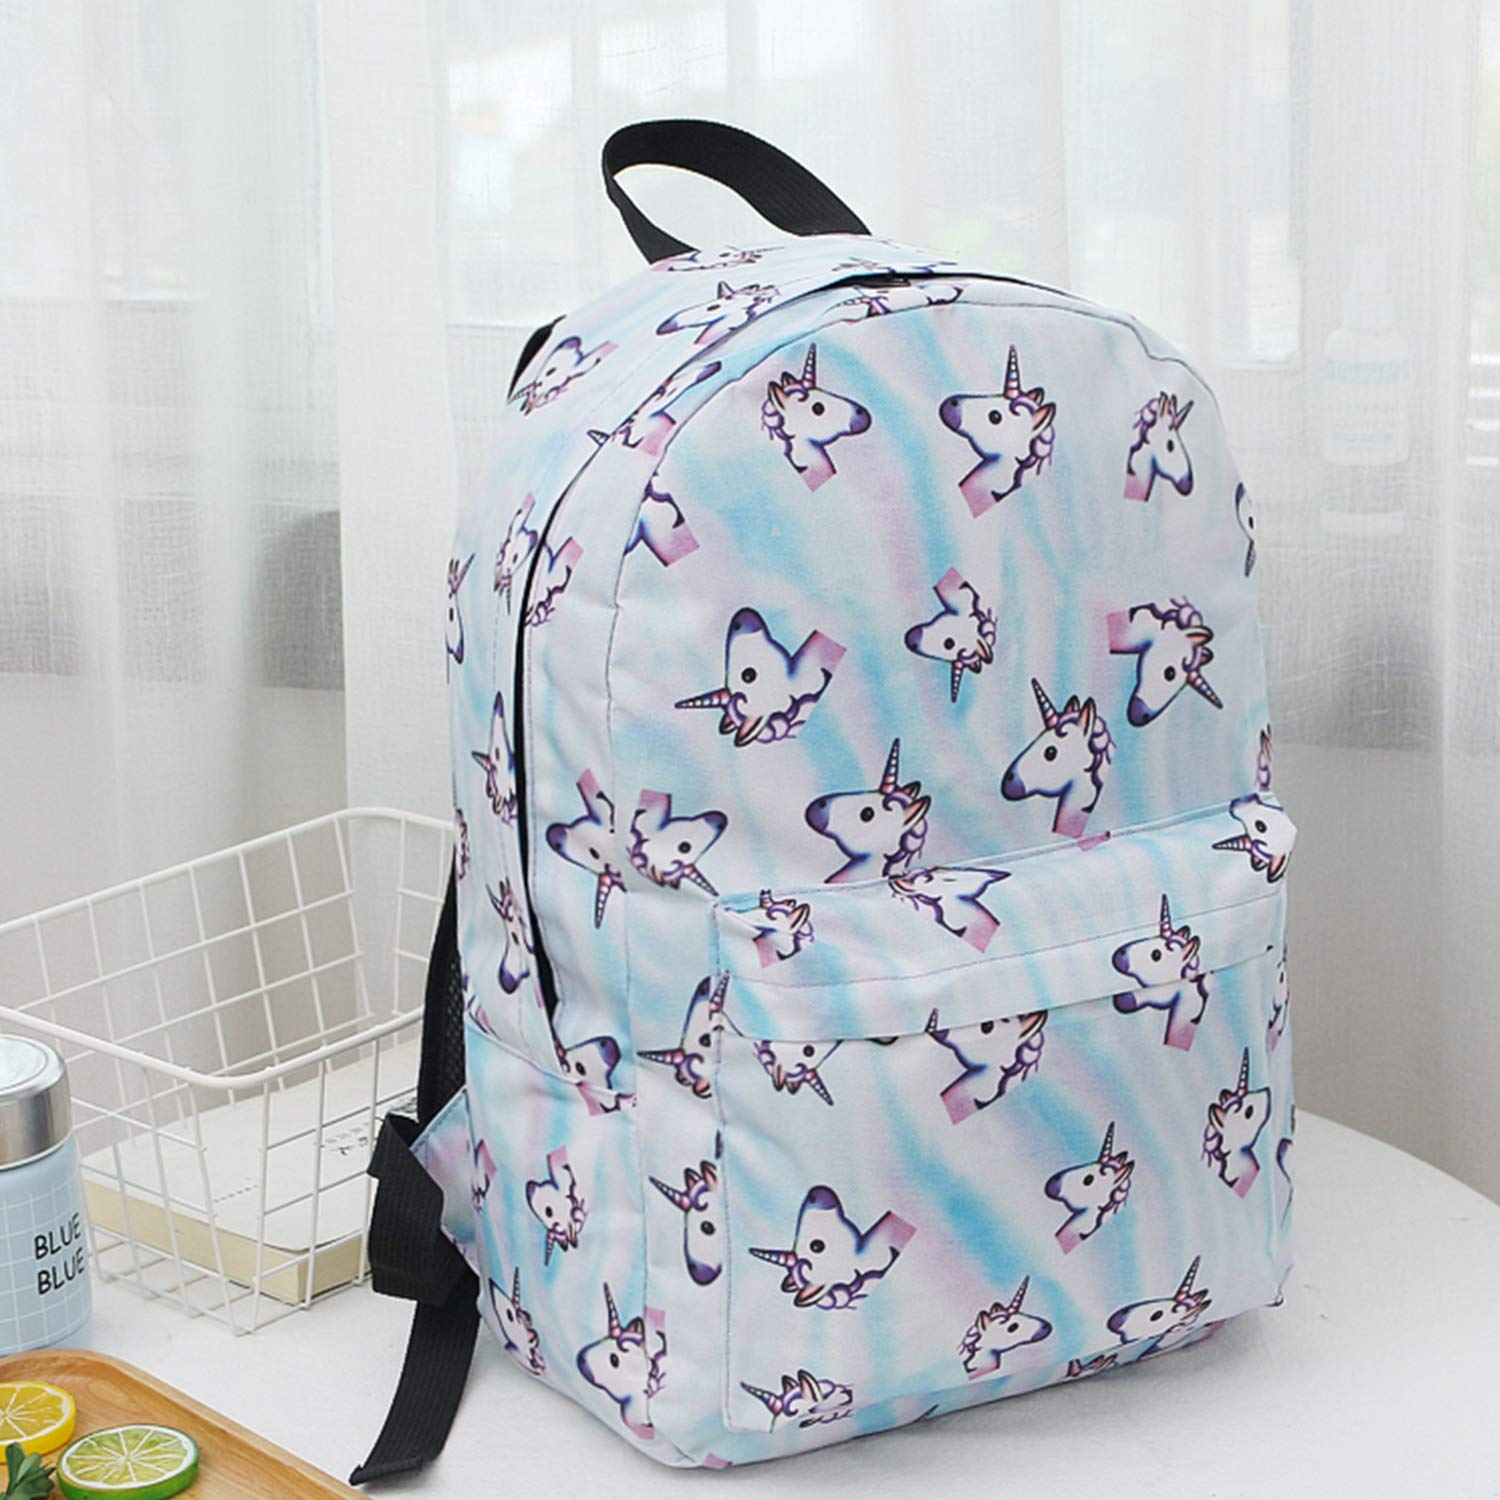 Amazon.com | Unicorn Backpack Lightweight Kids School Preschool Travel Backpack for Girls with Free Unicorn Headbands or Unicorn Keychain | Kids Backpacks